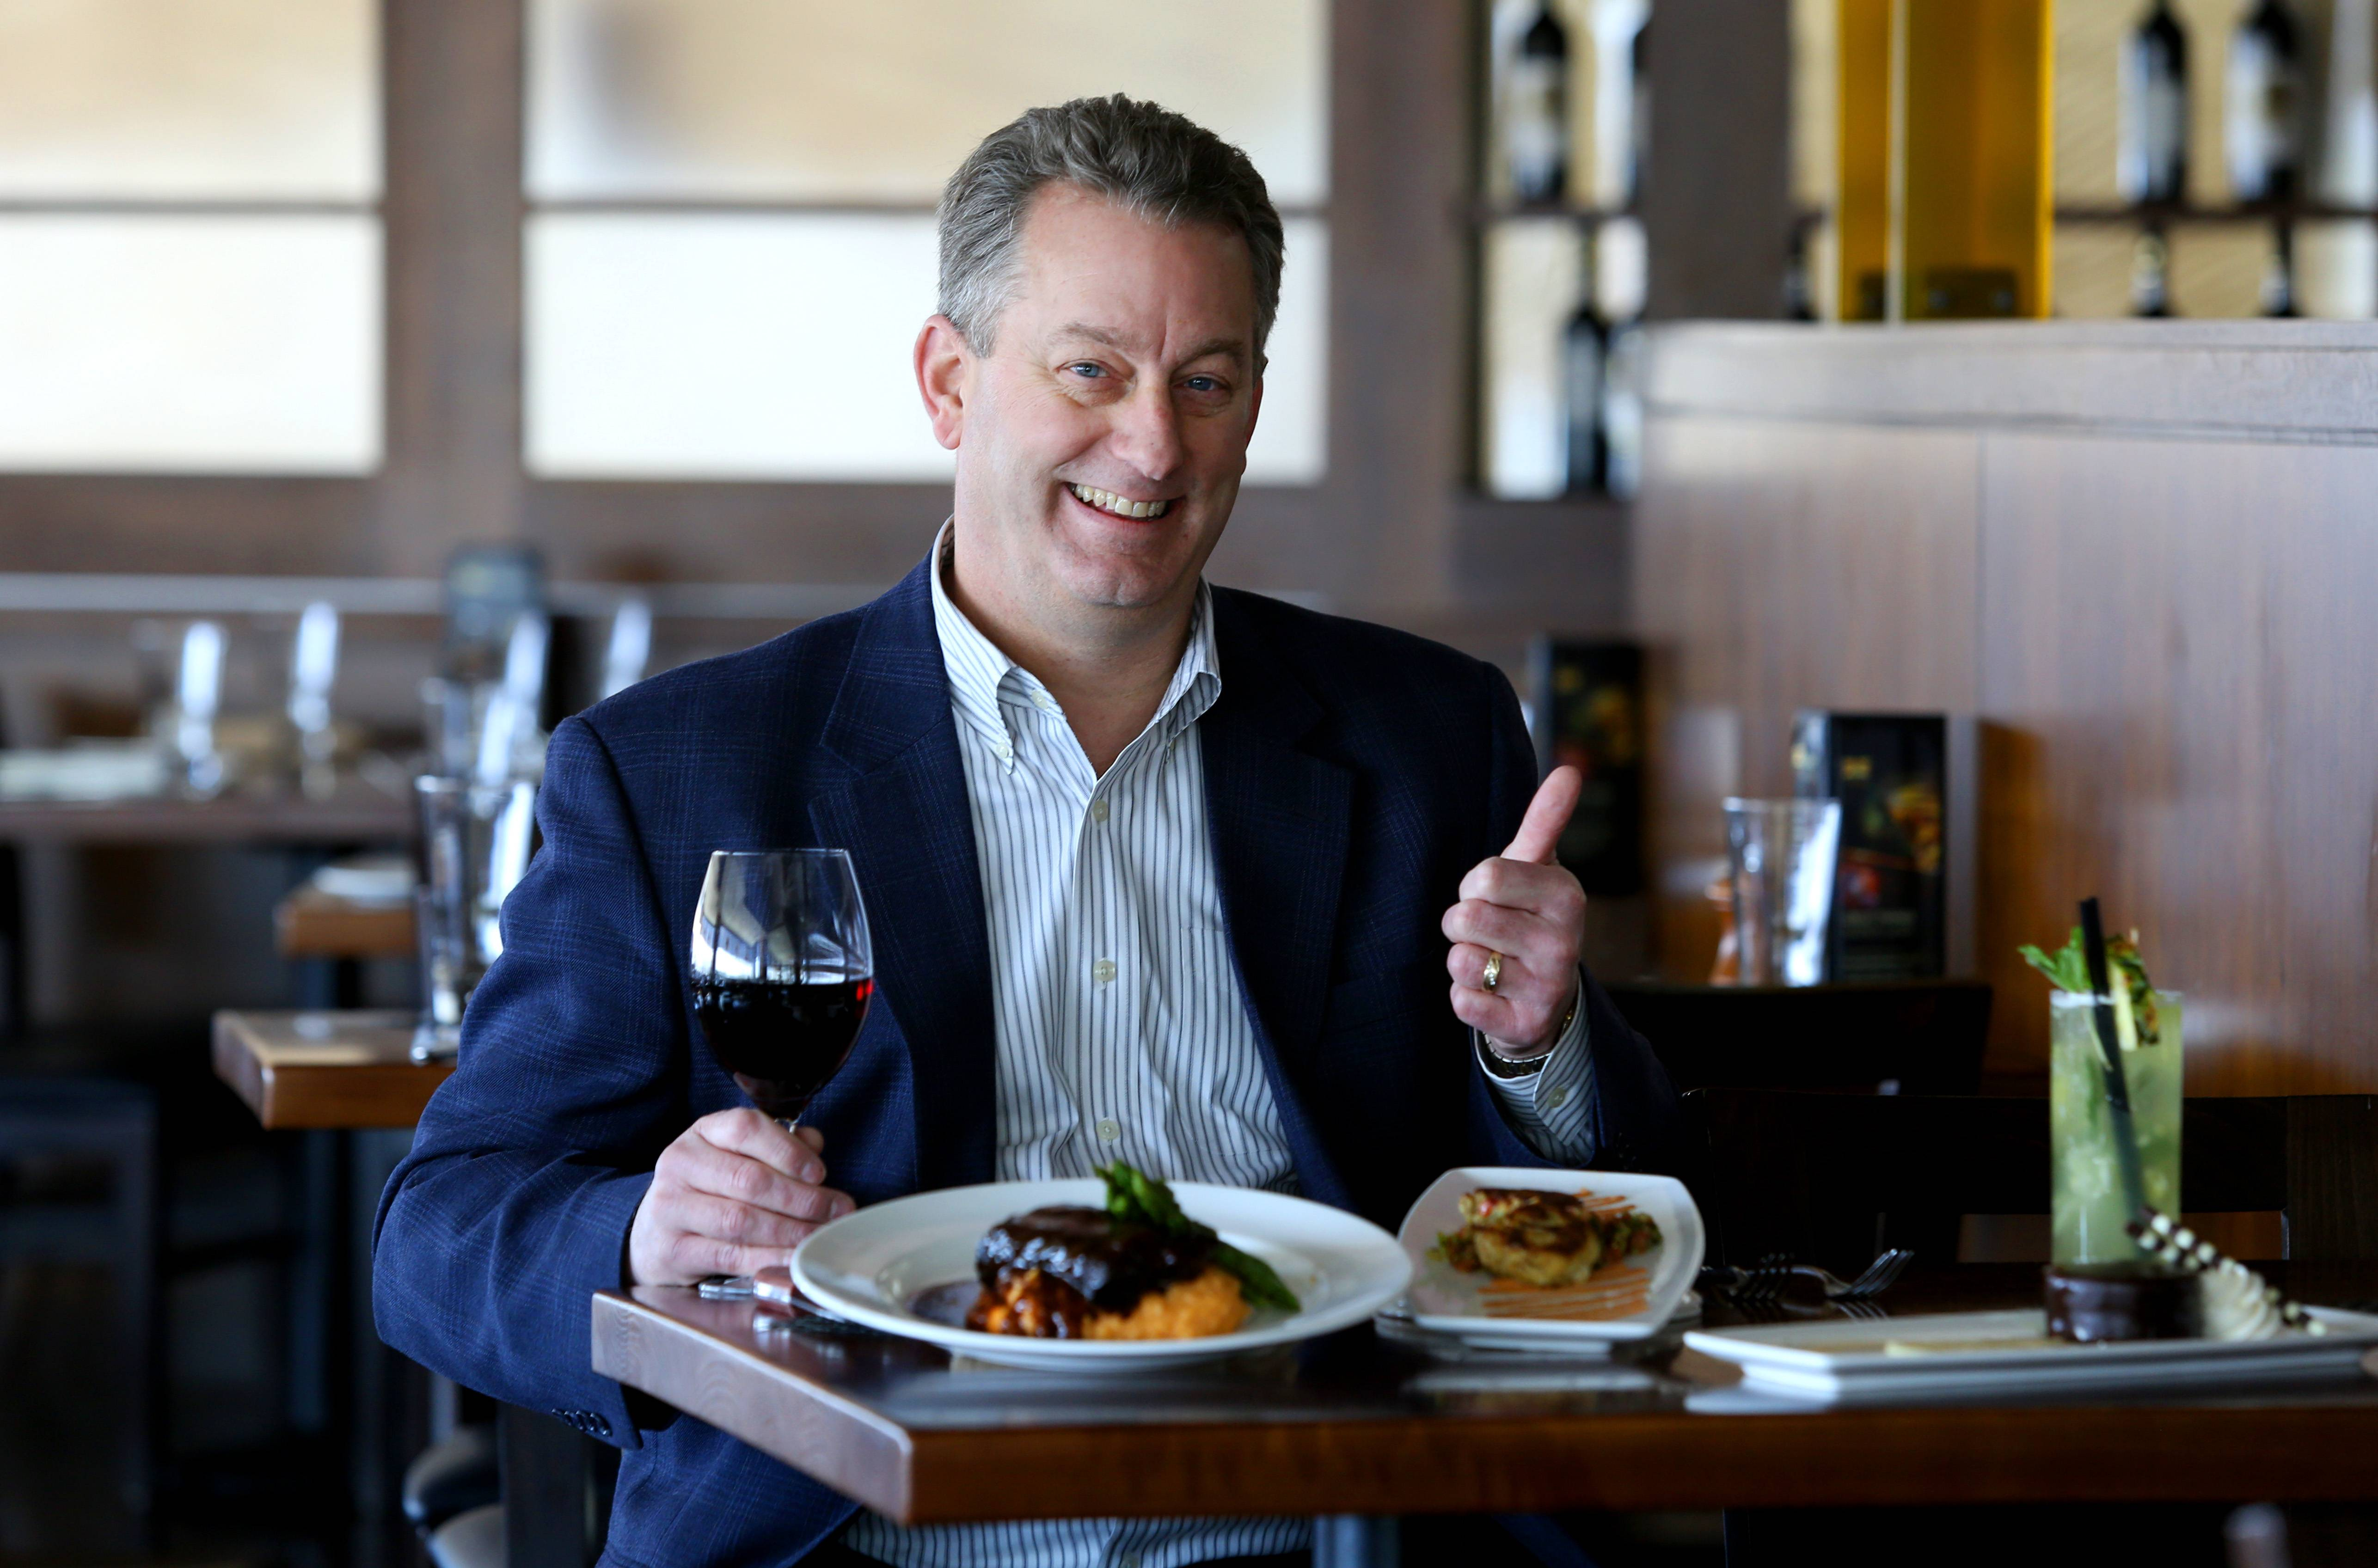 Ray Kinney, chairman of the Dine Naperville committee, says he worked to launch the first Naperville Restaurant Week as a way to encourage people to try new restaurants among the 260 offerings in the city. Thirty-four restaurants, including CityGate Grille, are participating in the promotion, which lasts Feb. 16 to March 3.